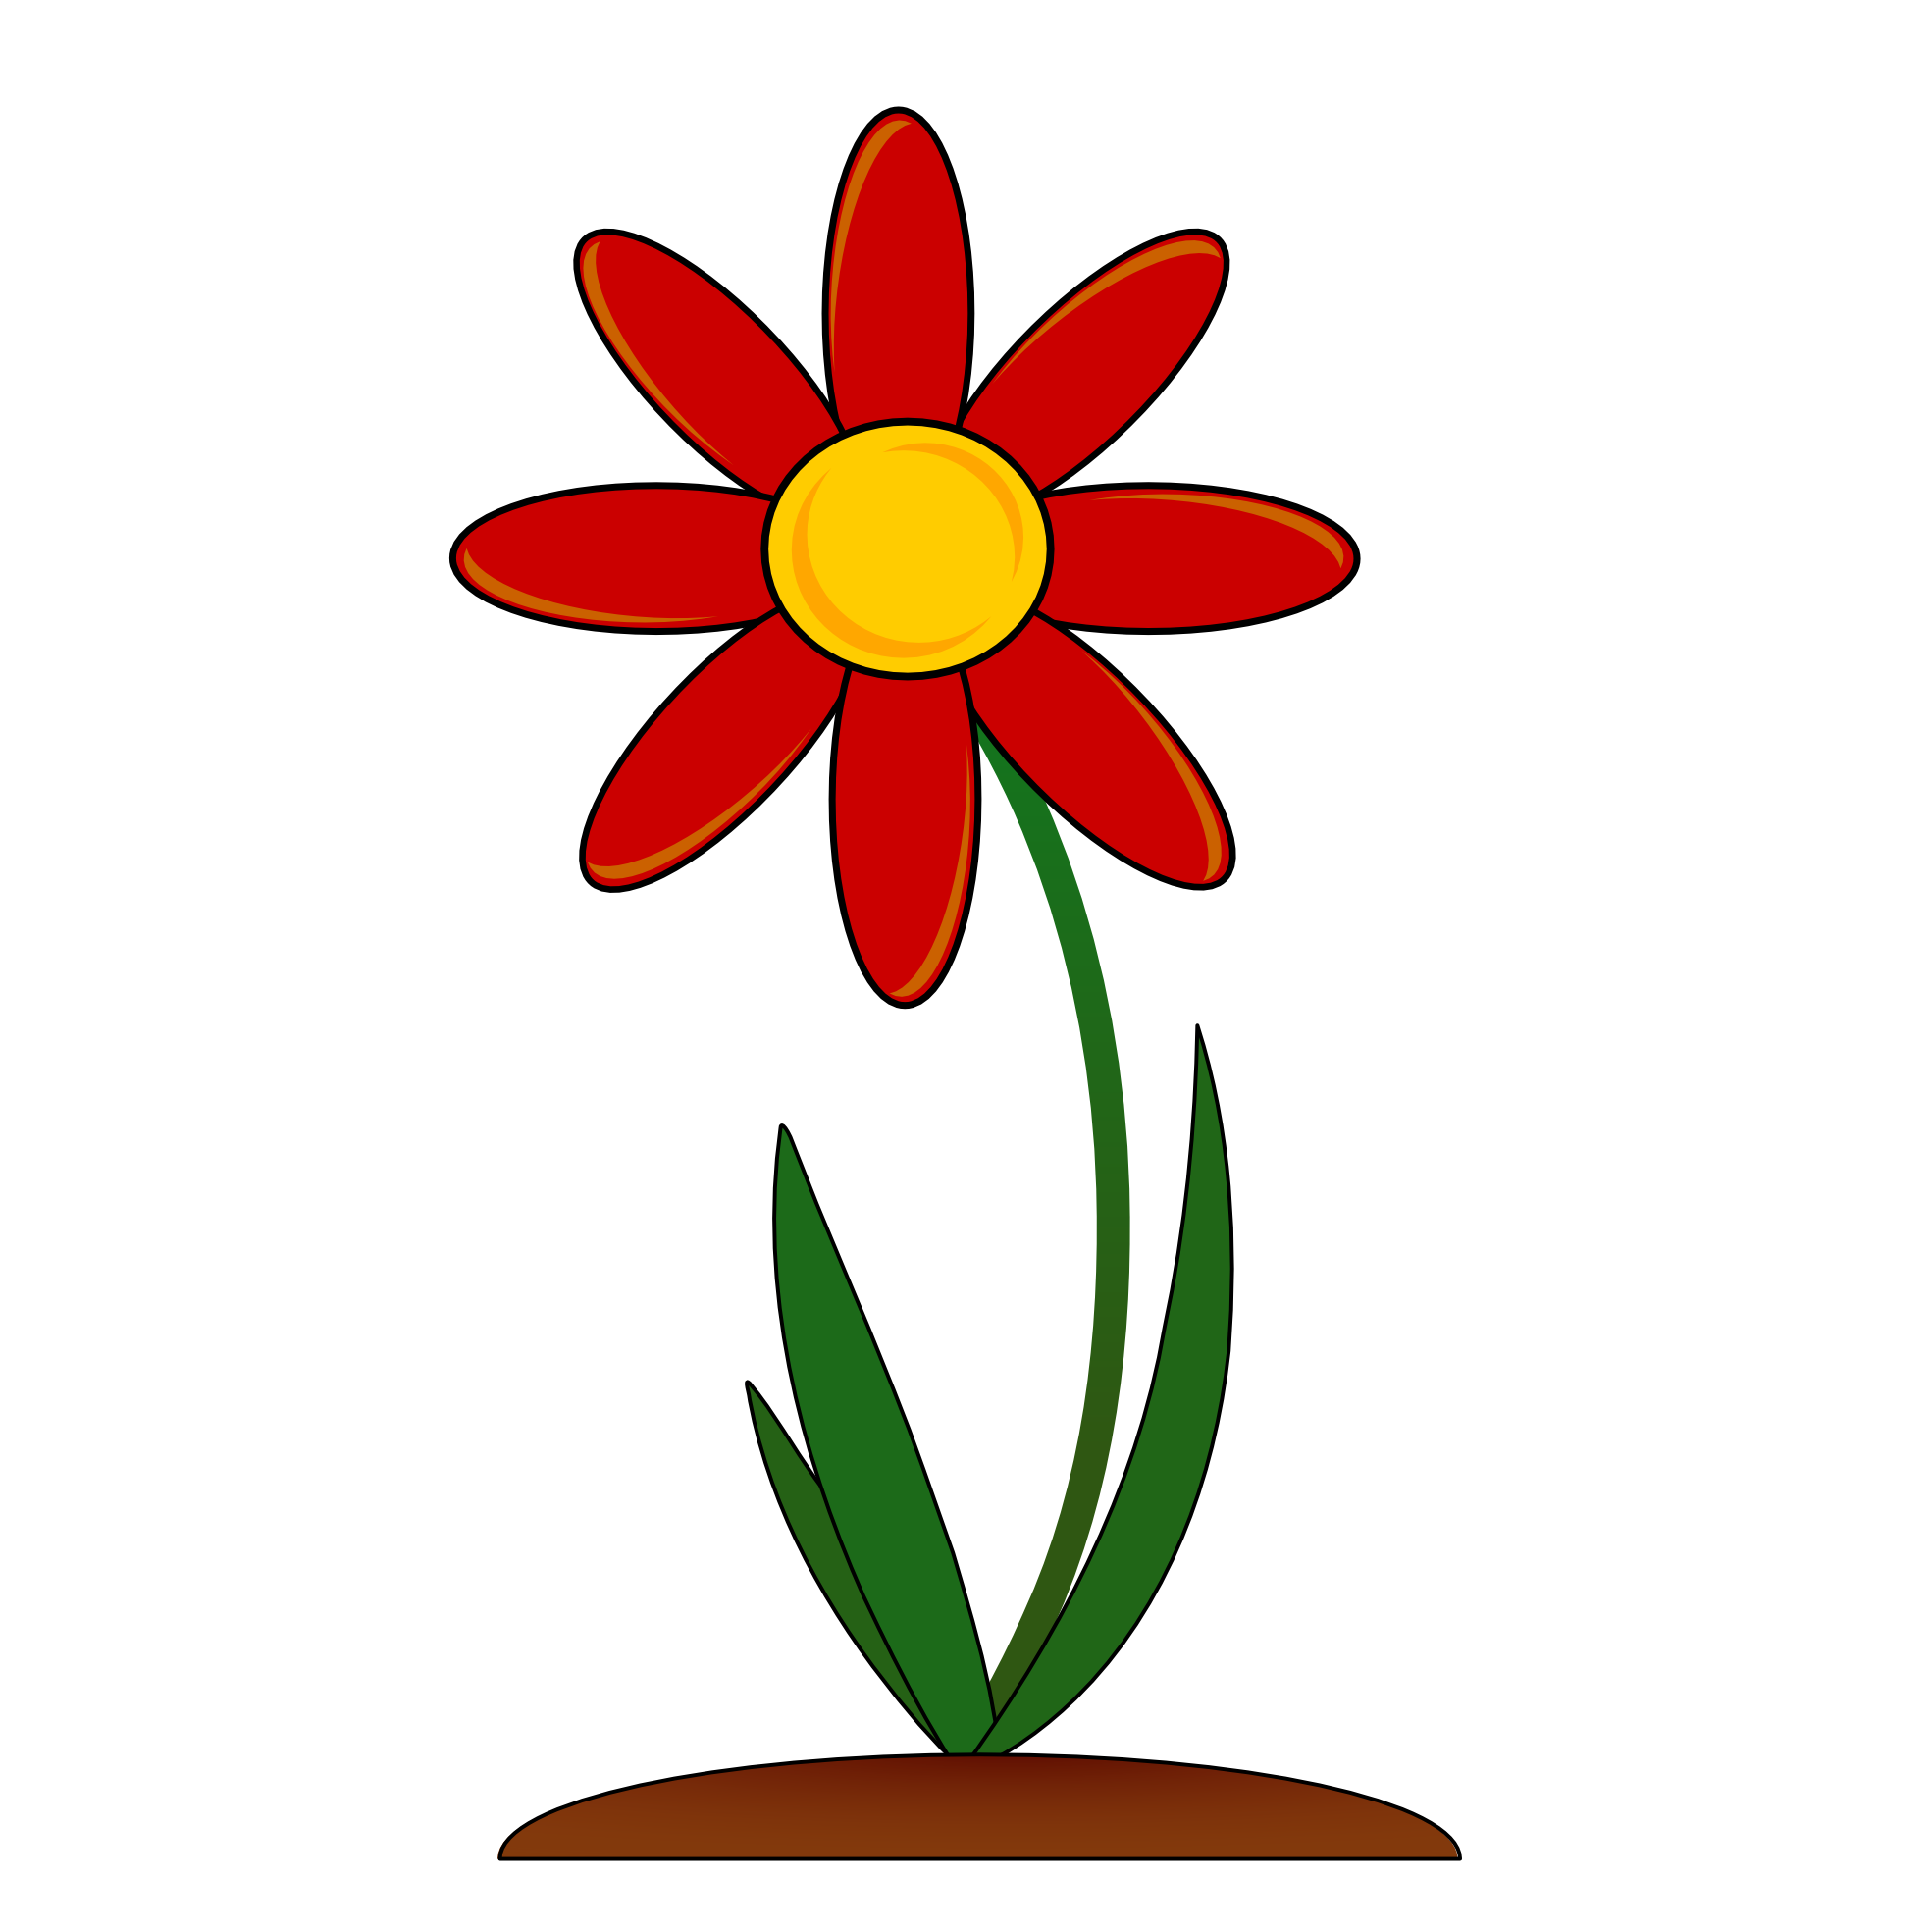 Flowers clipart png. Flower frame at getdrawings